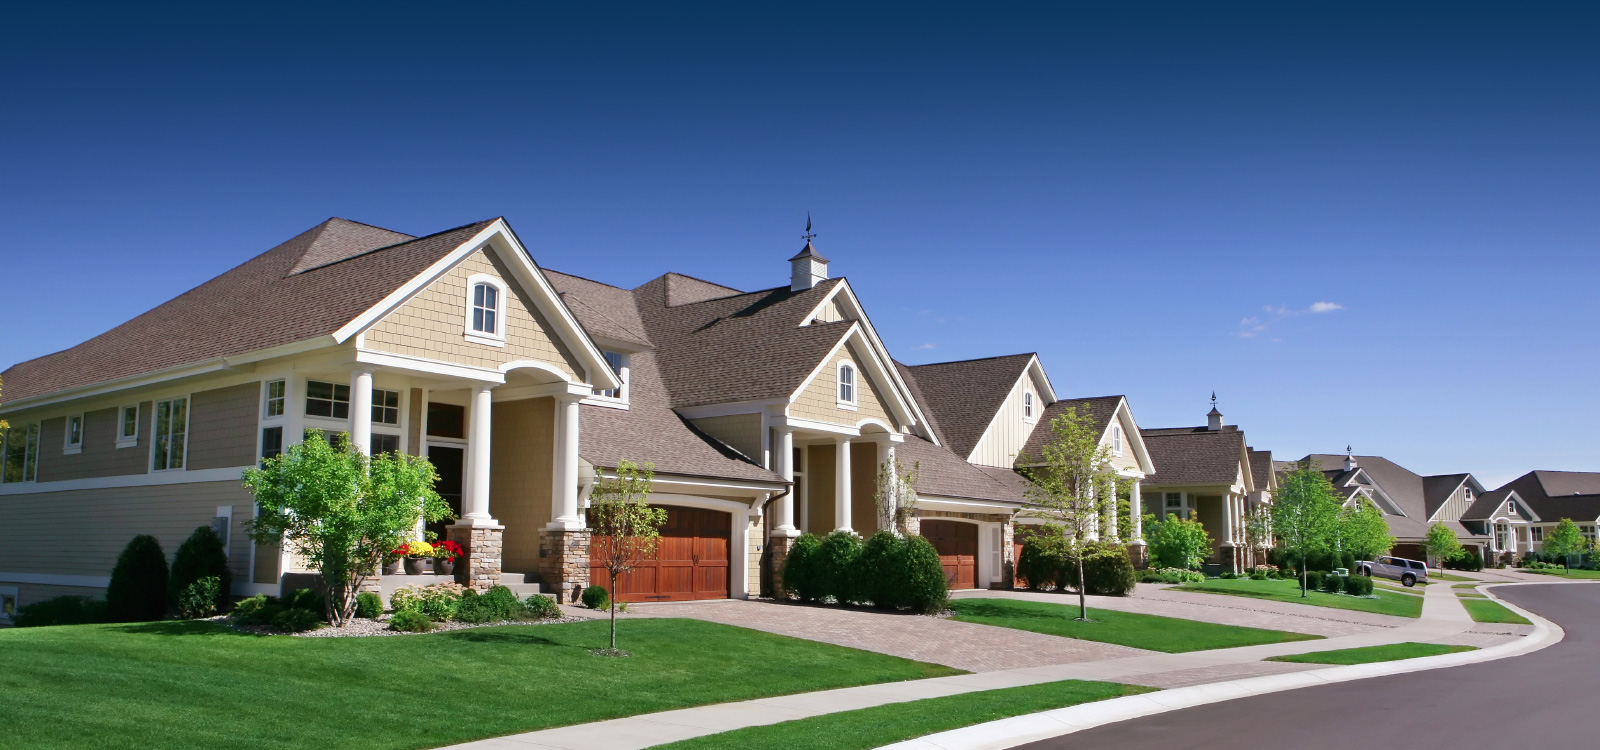 Home Inspection Checklist Fort Worth